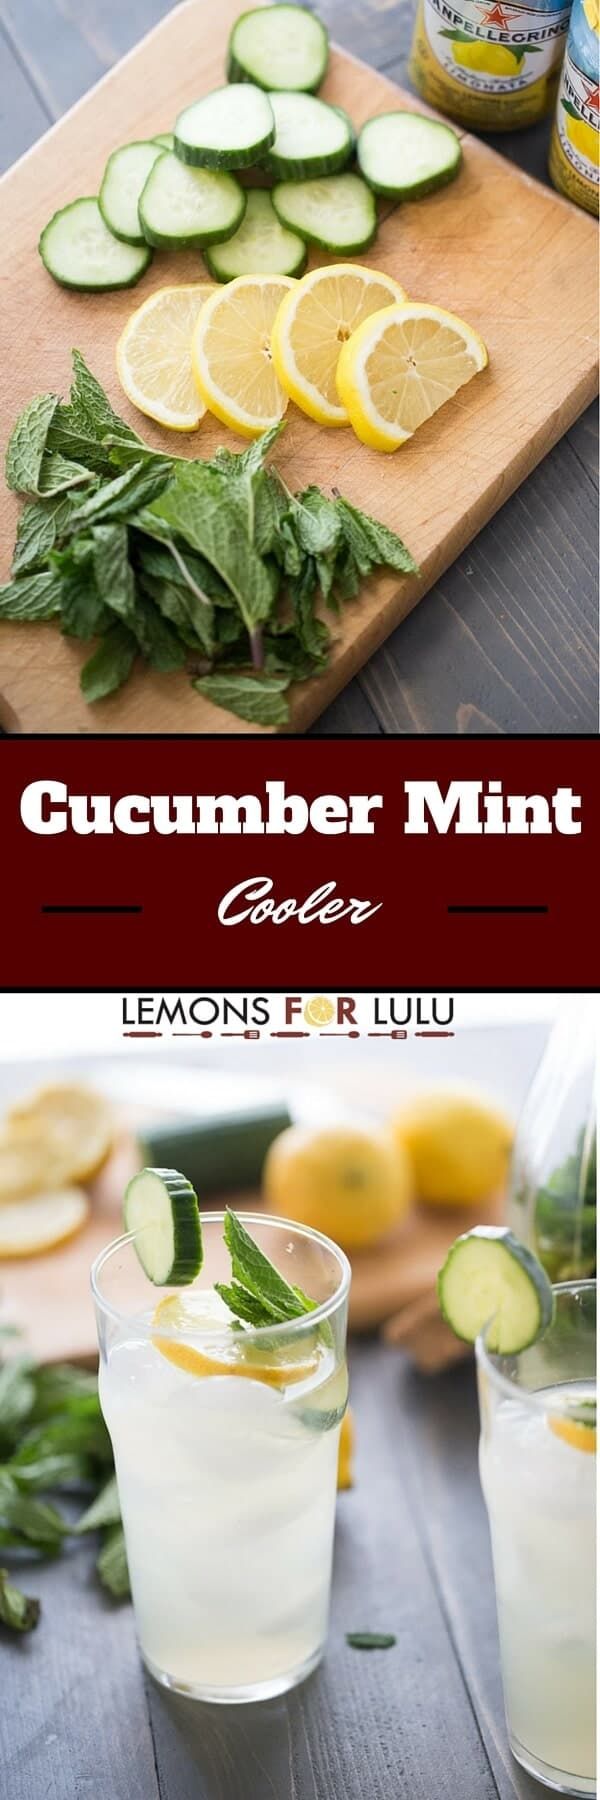 Crisp cucumbers, fresh mint, tangy lemons make this cooler one deliciously refreshing drink!